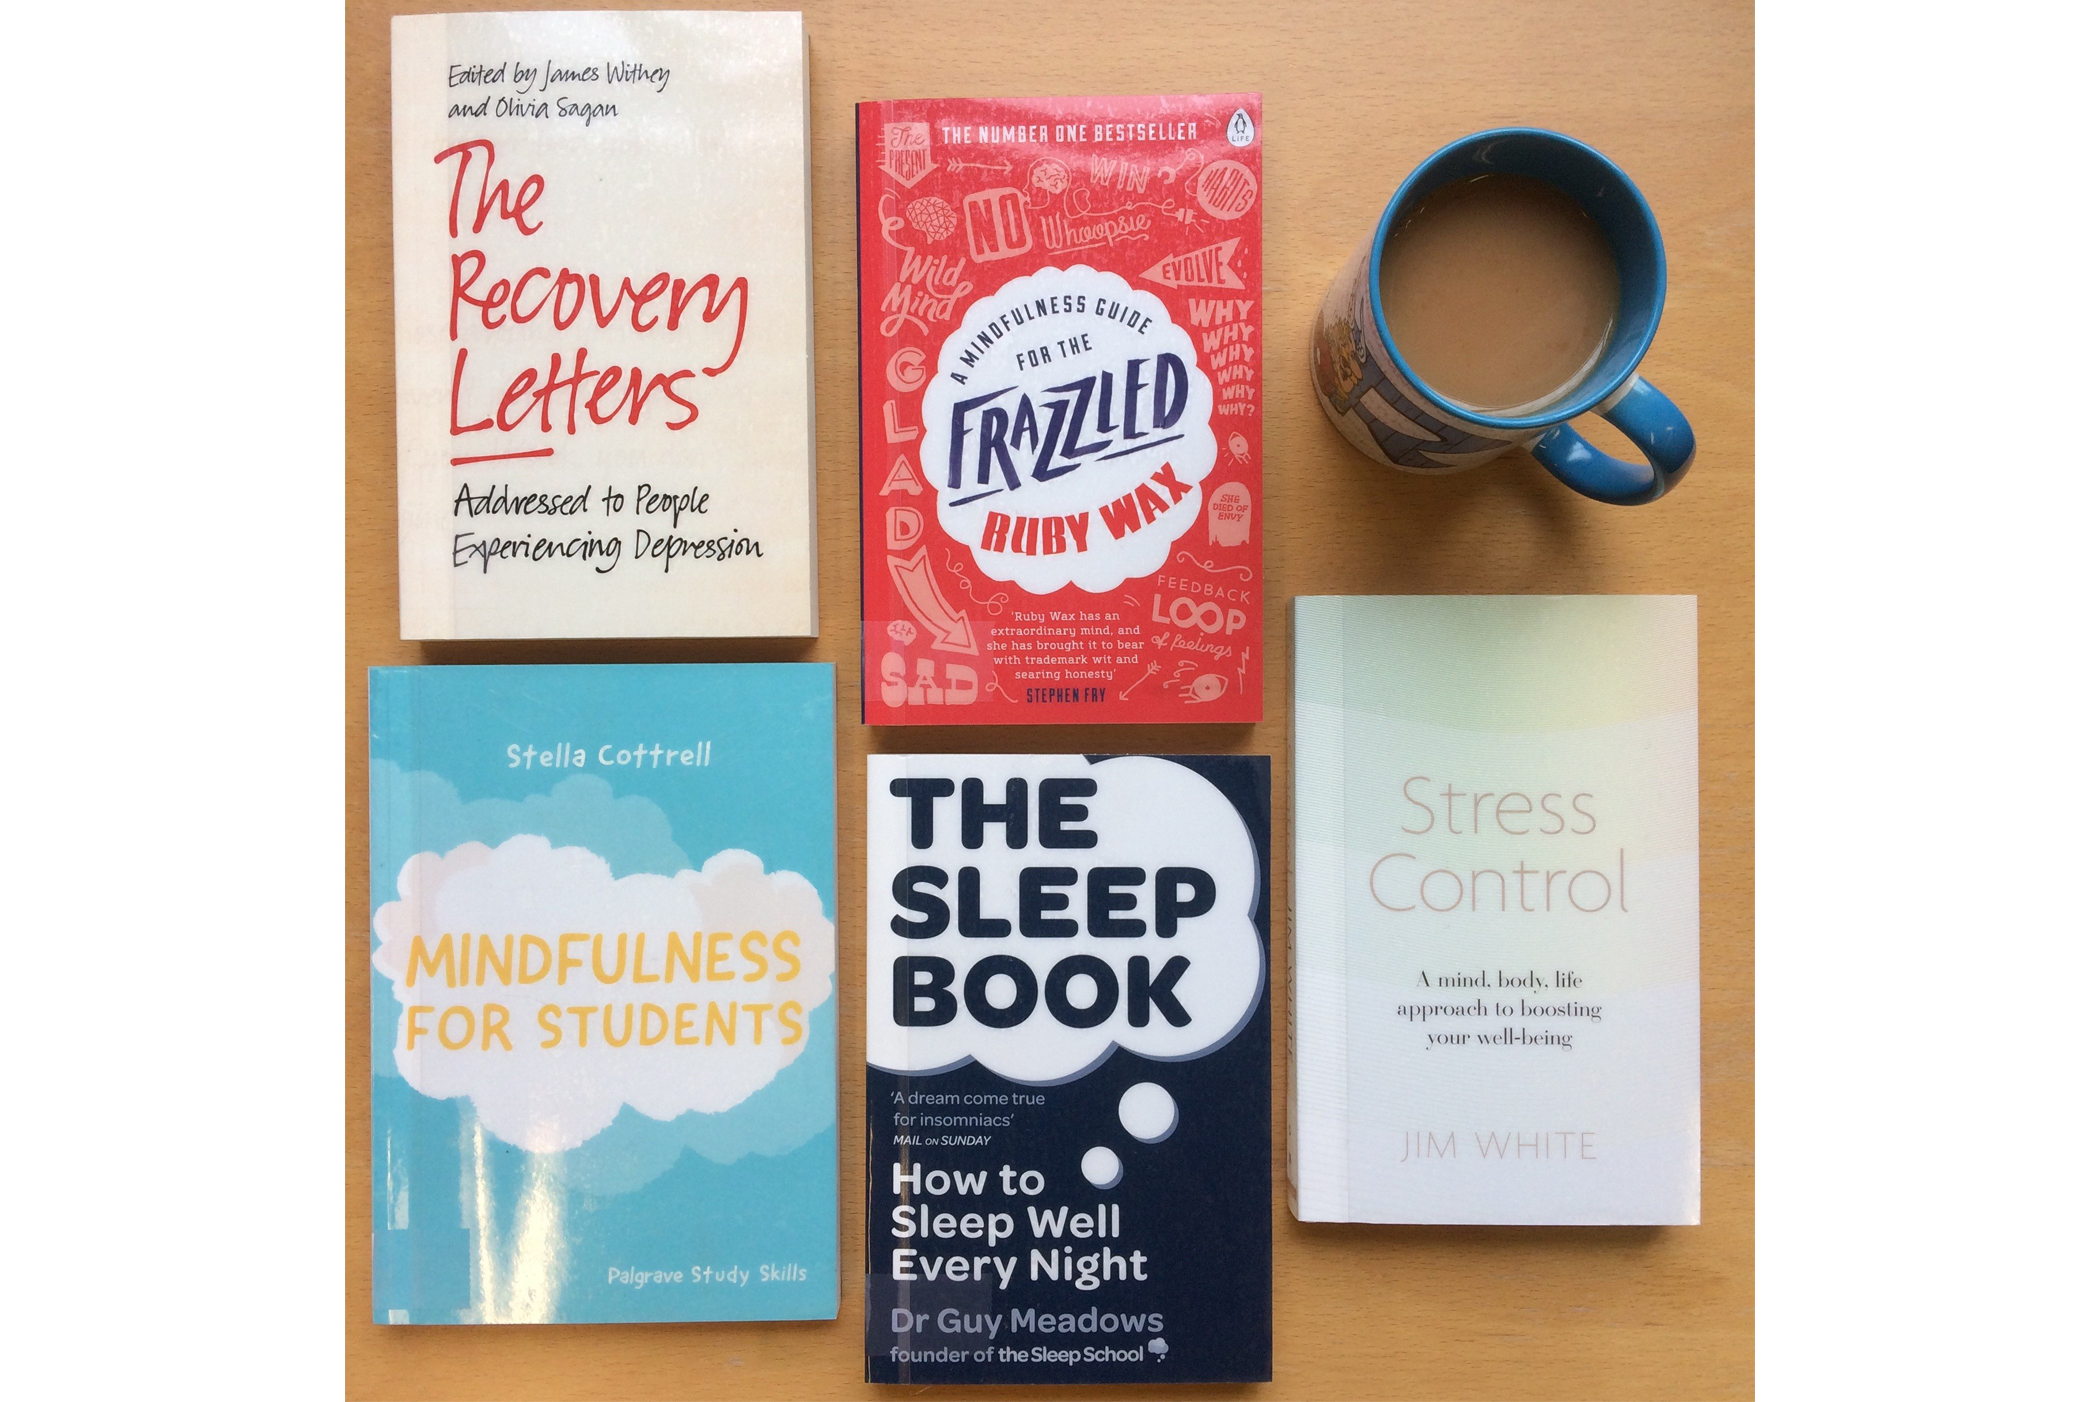 Photo of books on wellbeing and a cup with coffee on the table